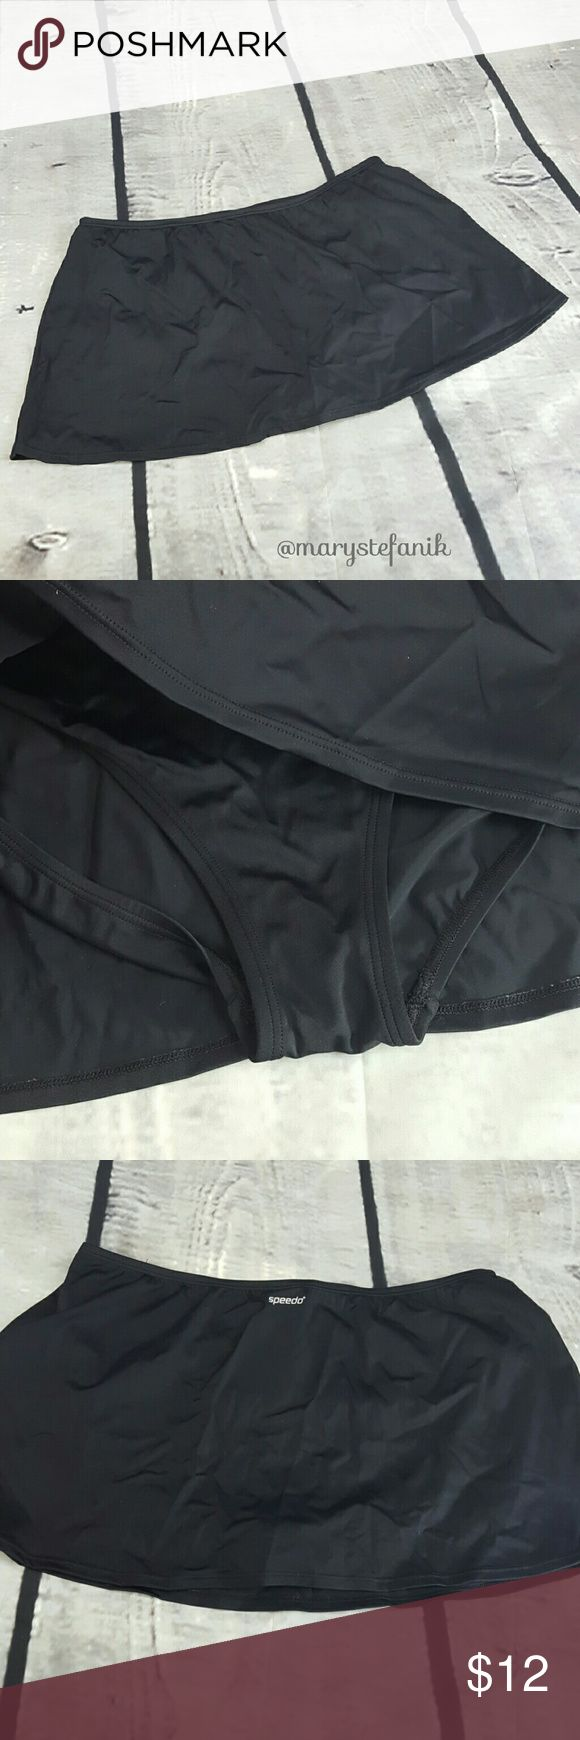 """Speedo Black Swim Skirt Bikini Bottom size 16 Speedo Black Swim Skirt Bikini Bottom size 16 in excellent used condition. Skirt layer measures approximately 16"""" waist seam to seam and 11.5"""" length. Great neutral color!  Please let me know if you have any questions. Happy Poshing! Speedo Swim"""